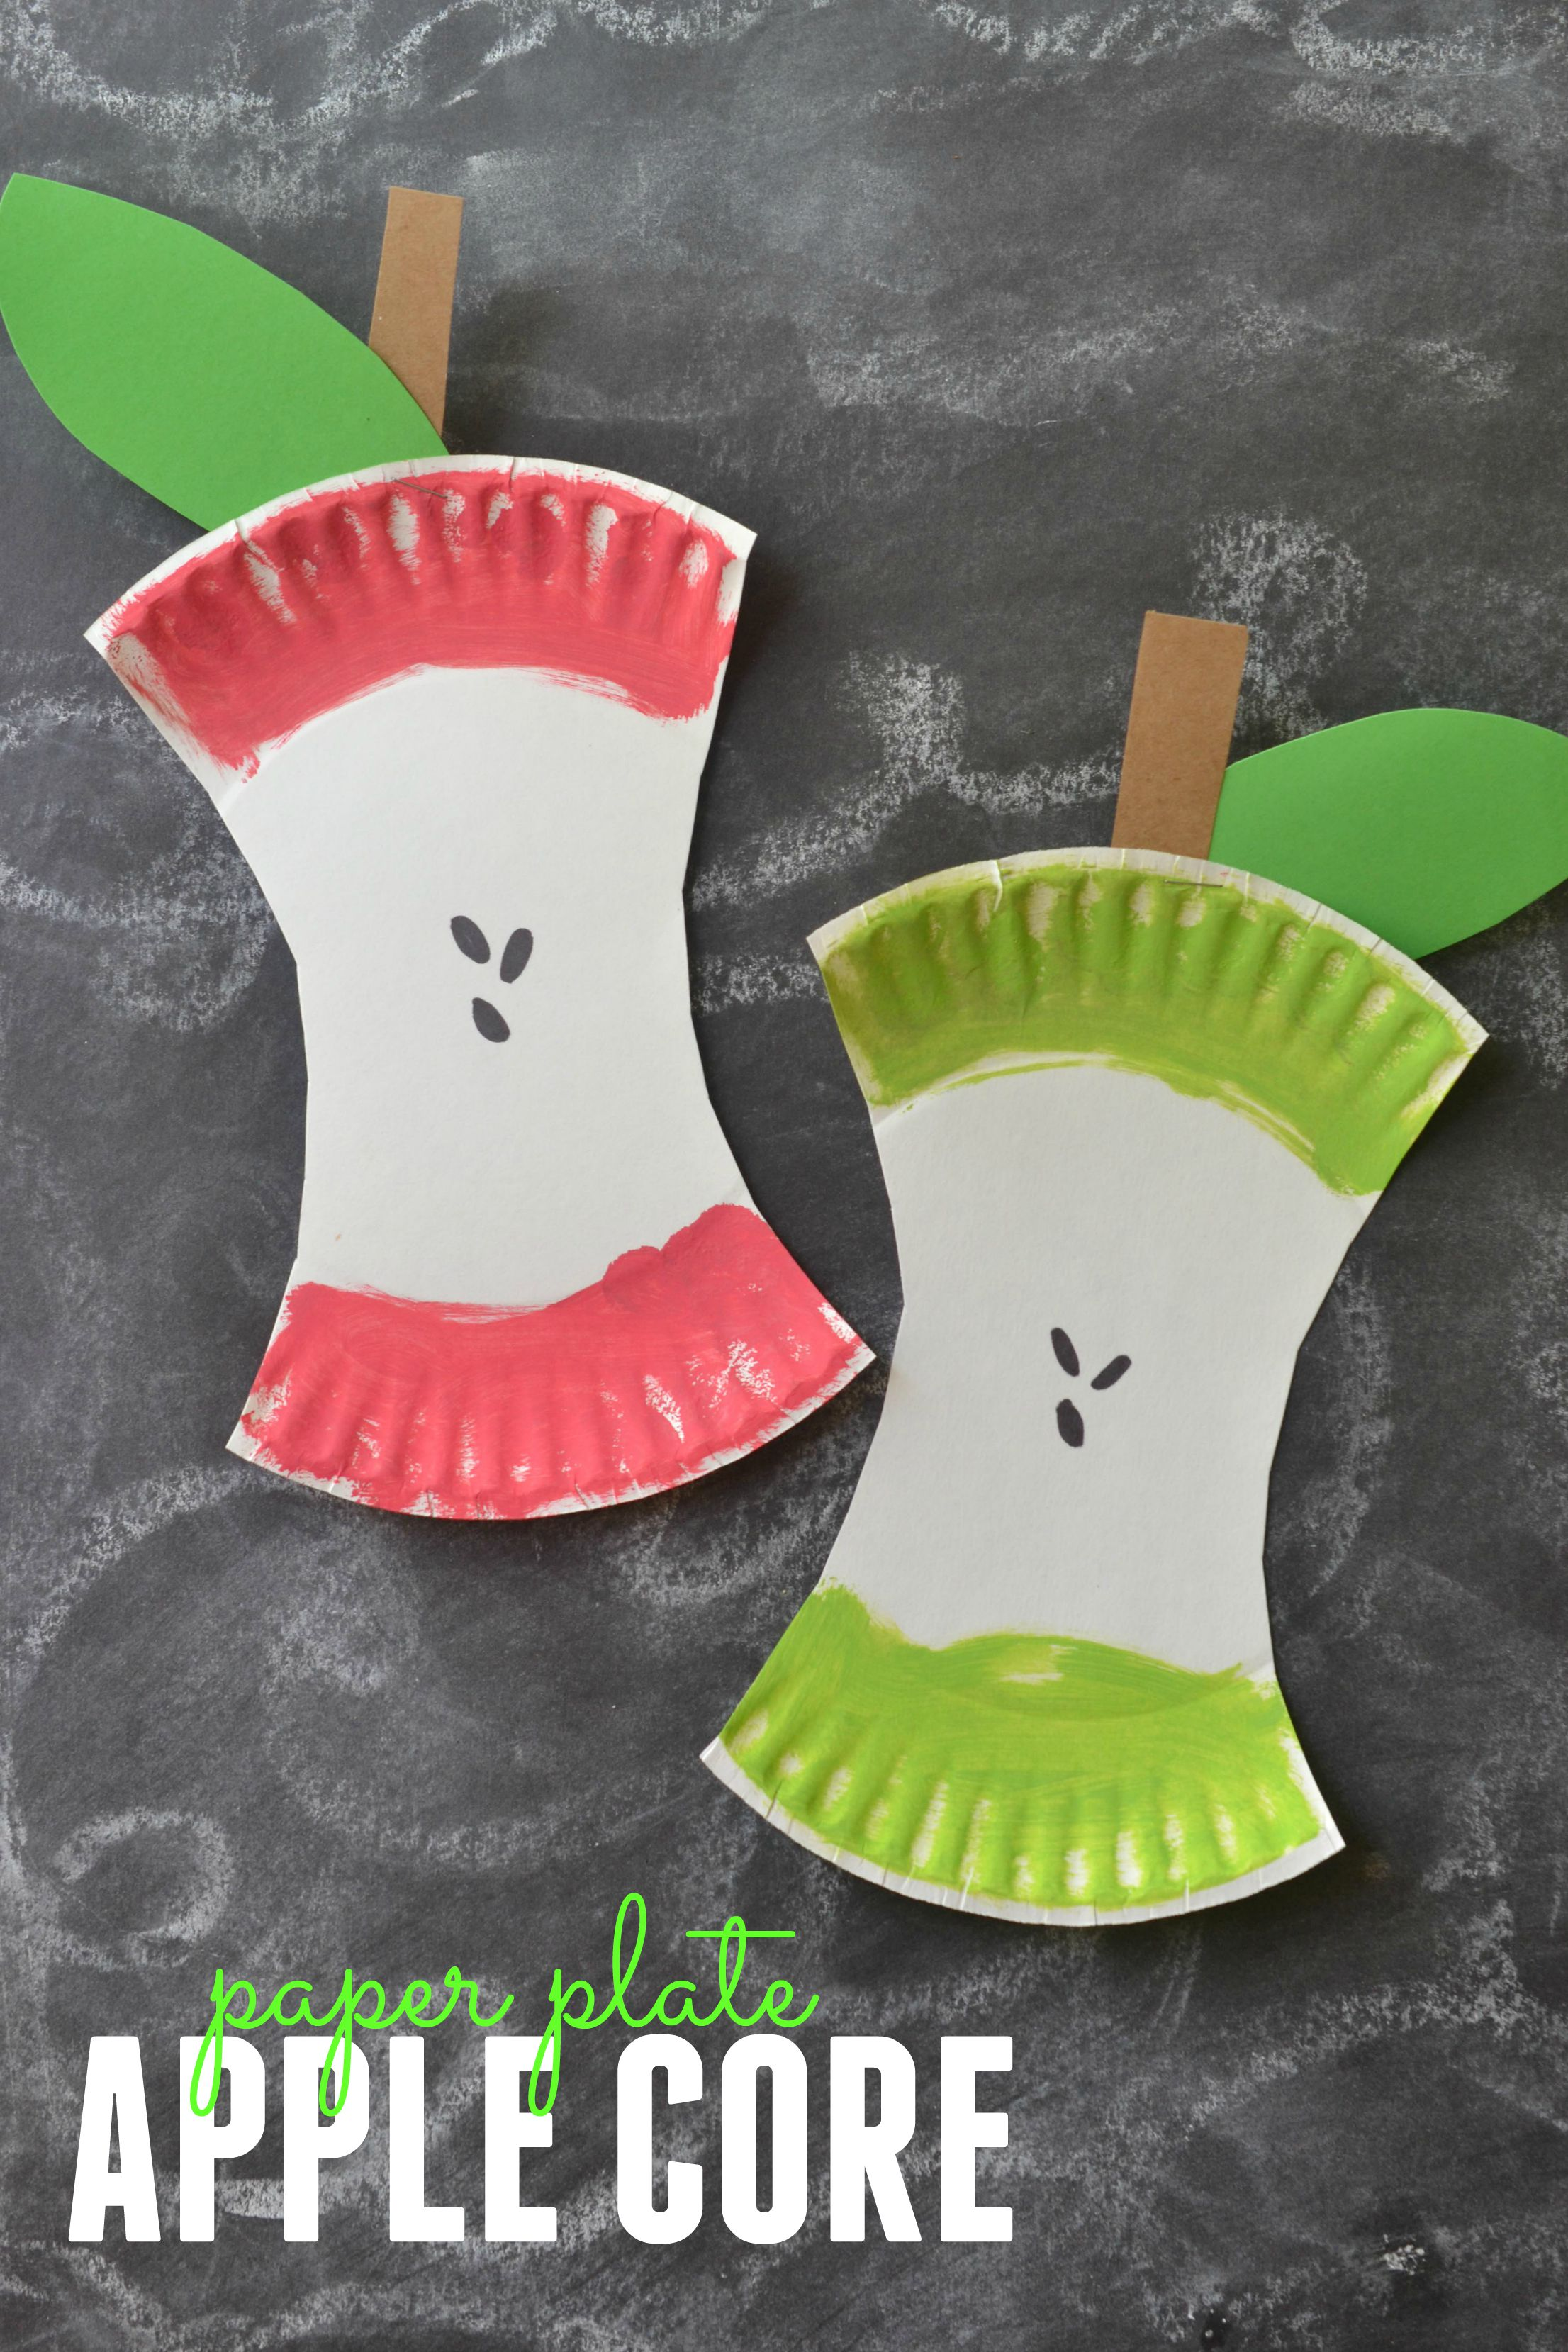 Diy apple core project fun crafts kids for Pinterest art ideas for adults